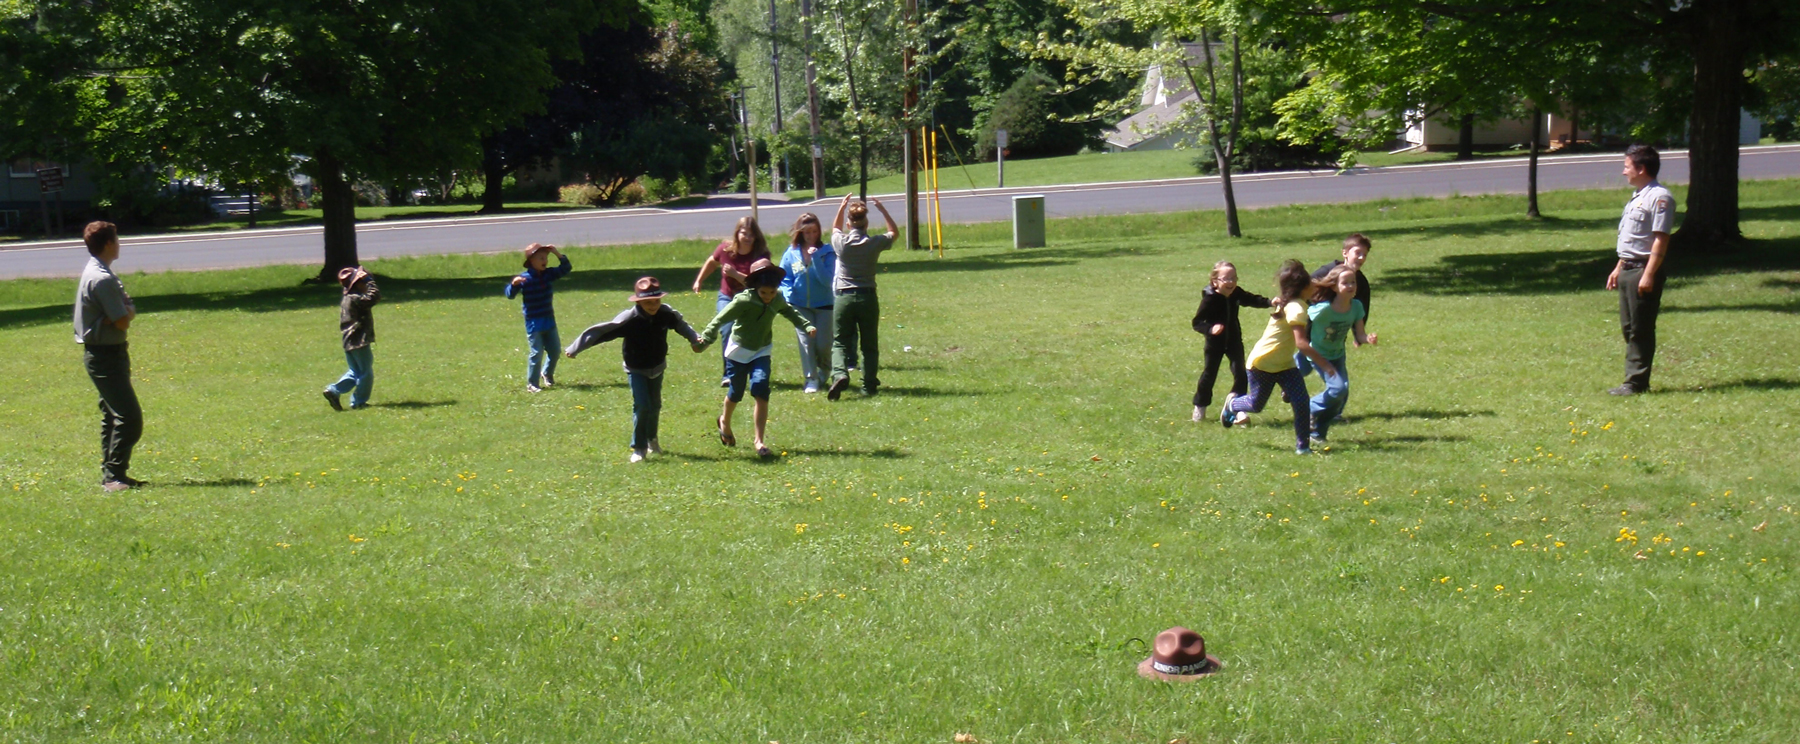 Conducting a junior ranger activity with students from the Bayfield summer school program